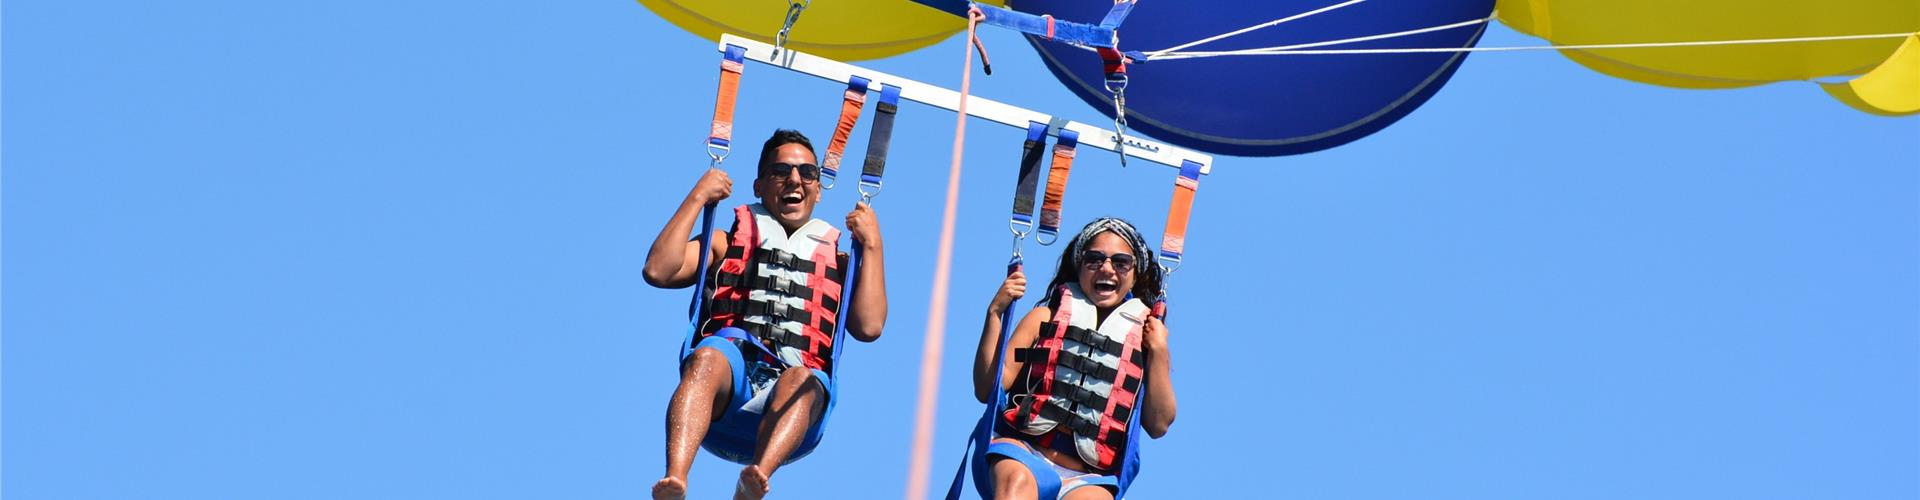 Photo of Parasailing Experience in Santorini